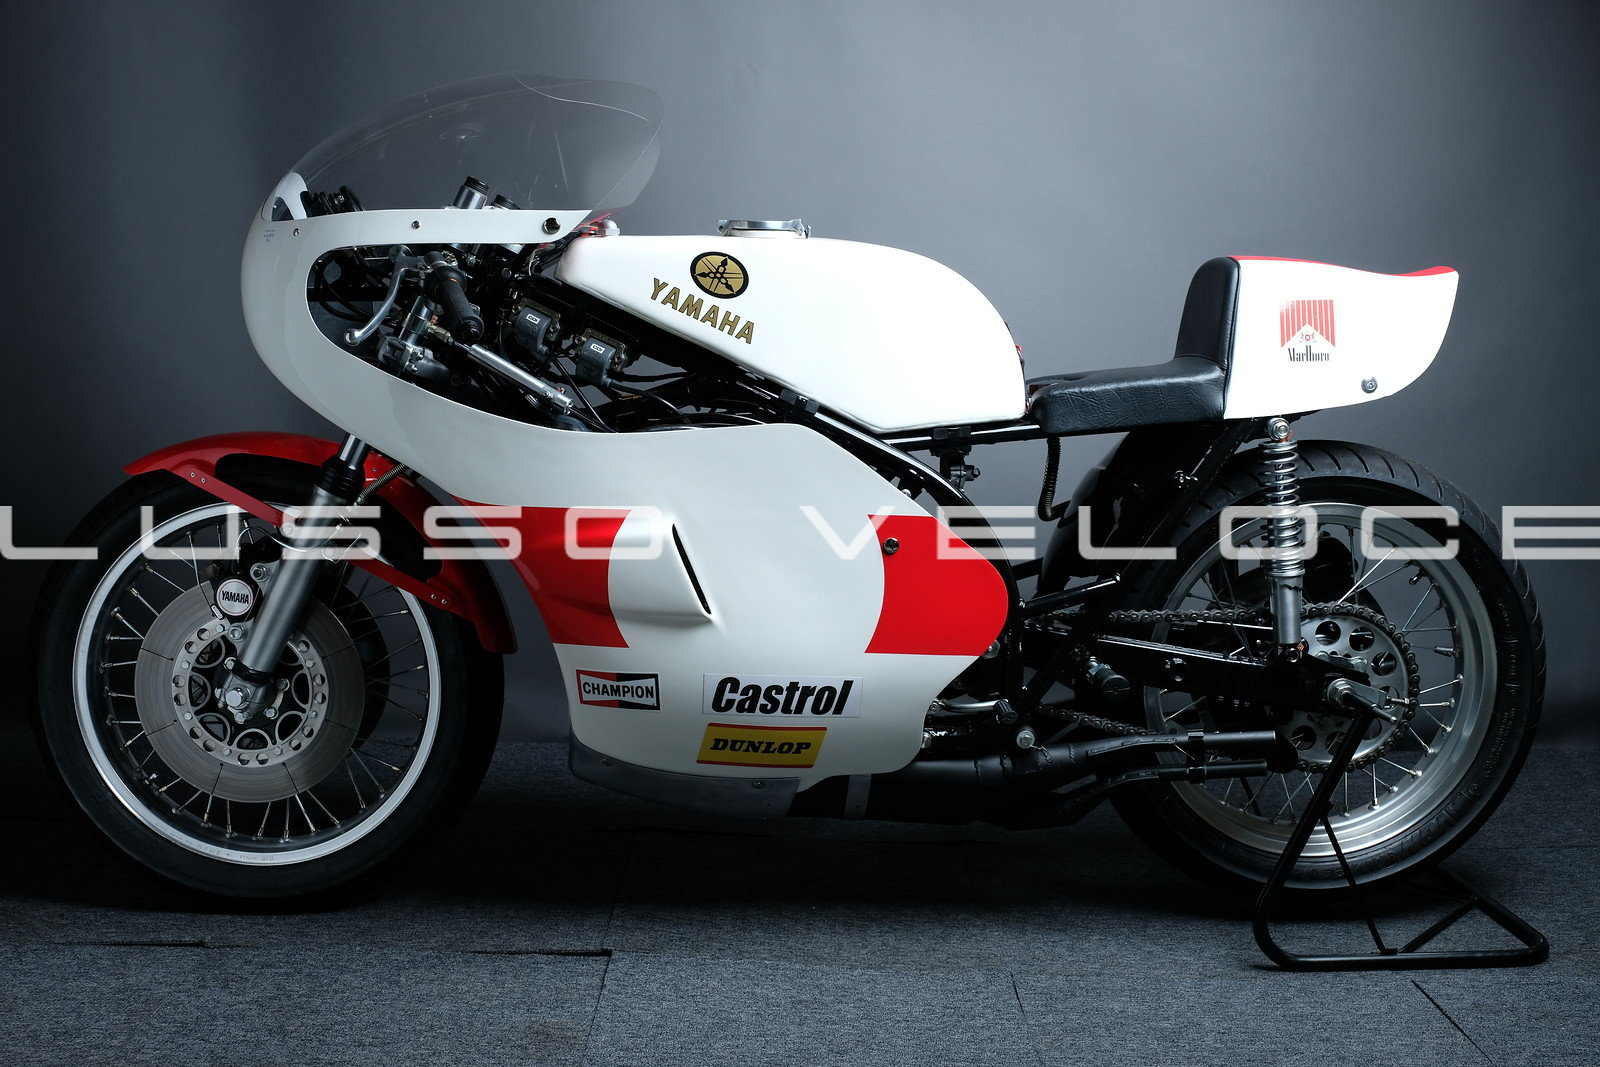 1975 Yamaha TZ 750 C GP Race bike  For Sale (picture 2 of 6)